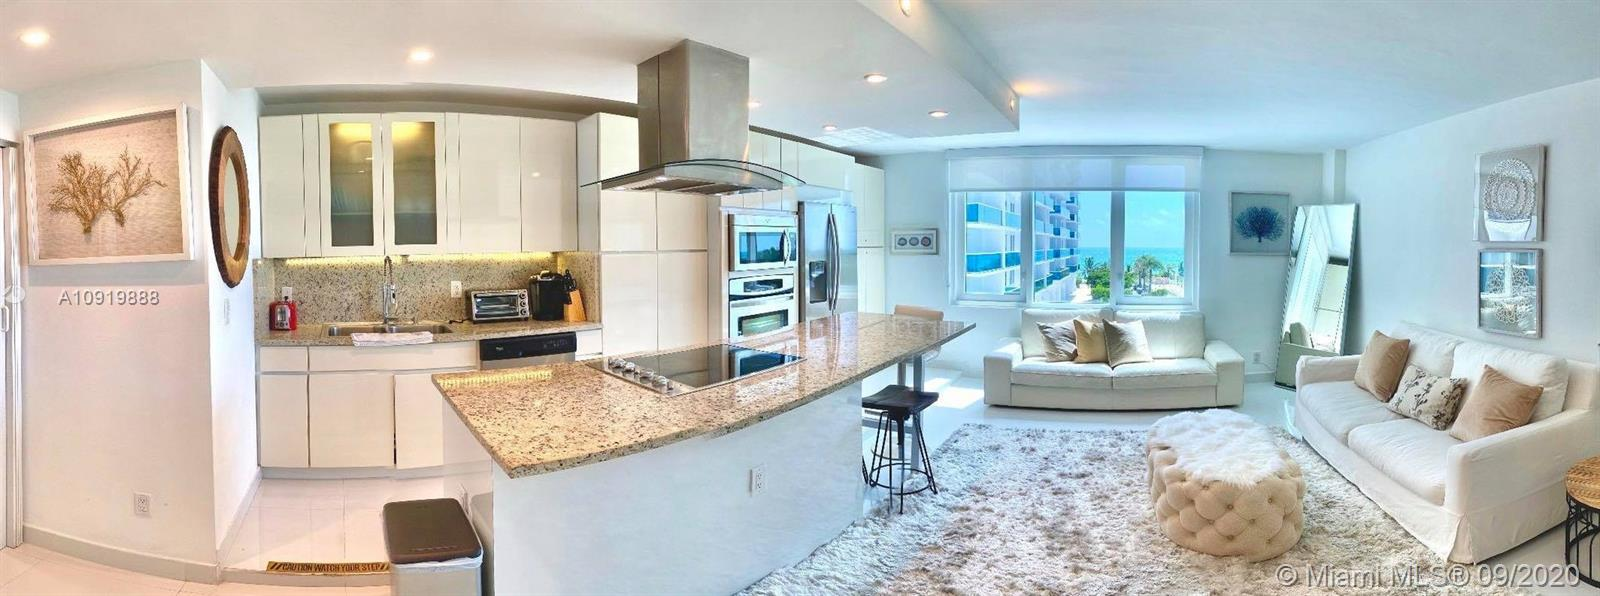 2301  Collins Ave #442 For Sale A10919888, FL